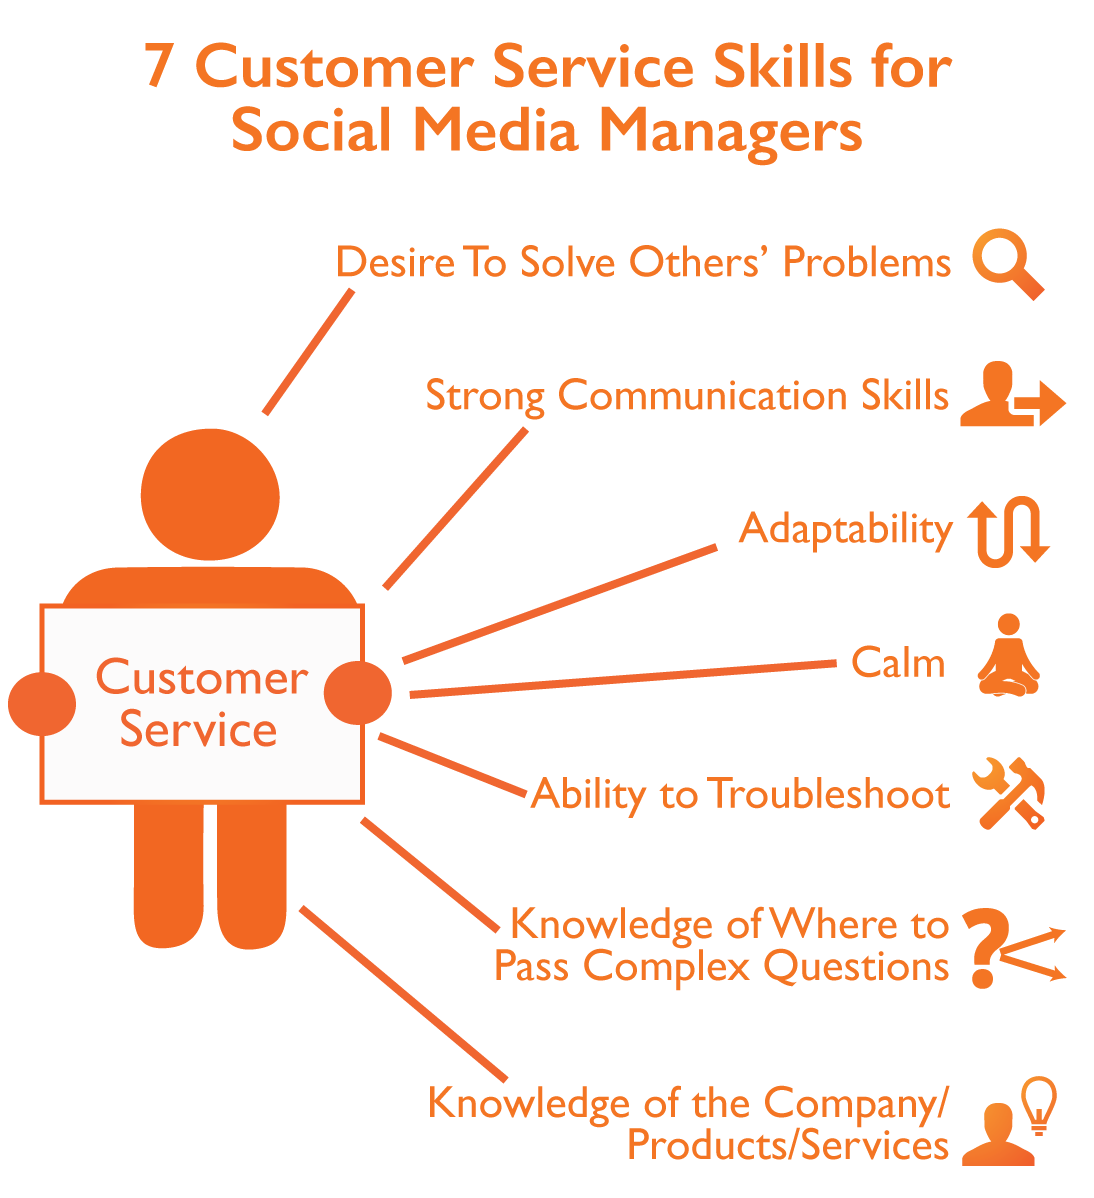 7-customer-service-skills-for-social-media-managers